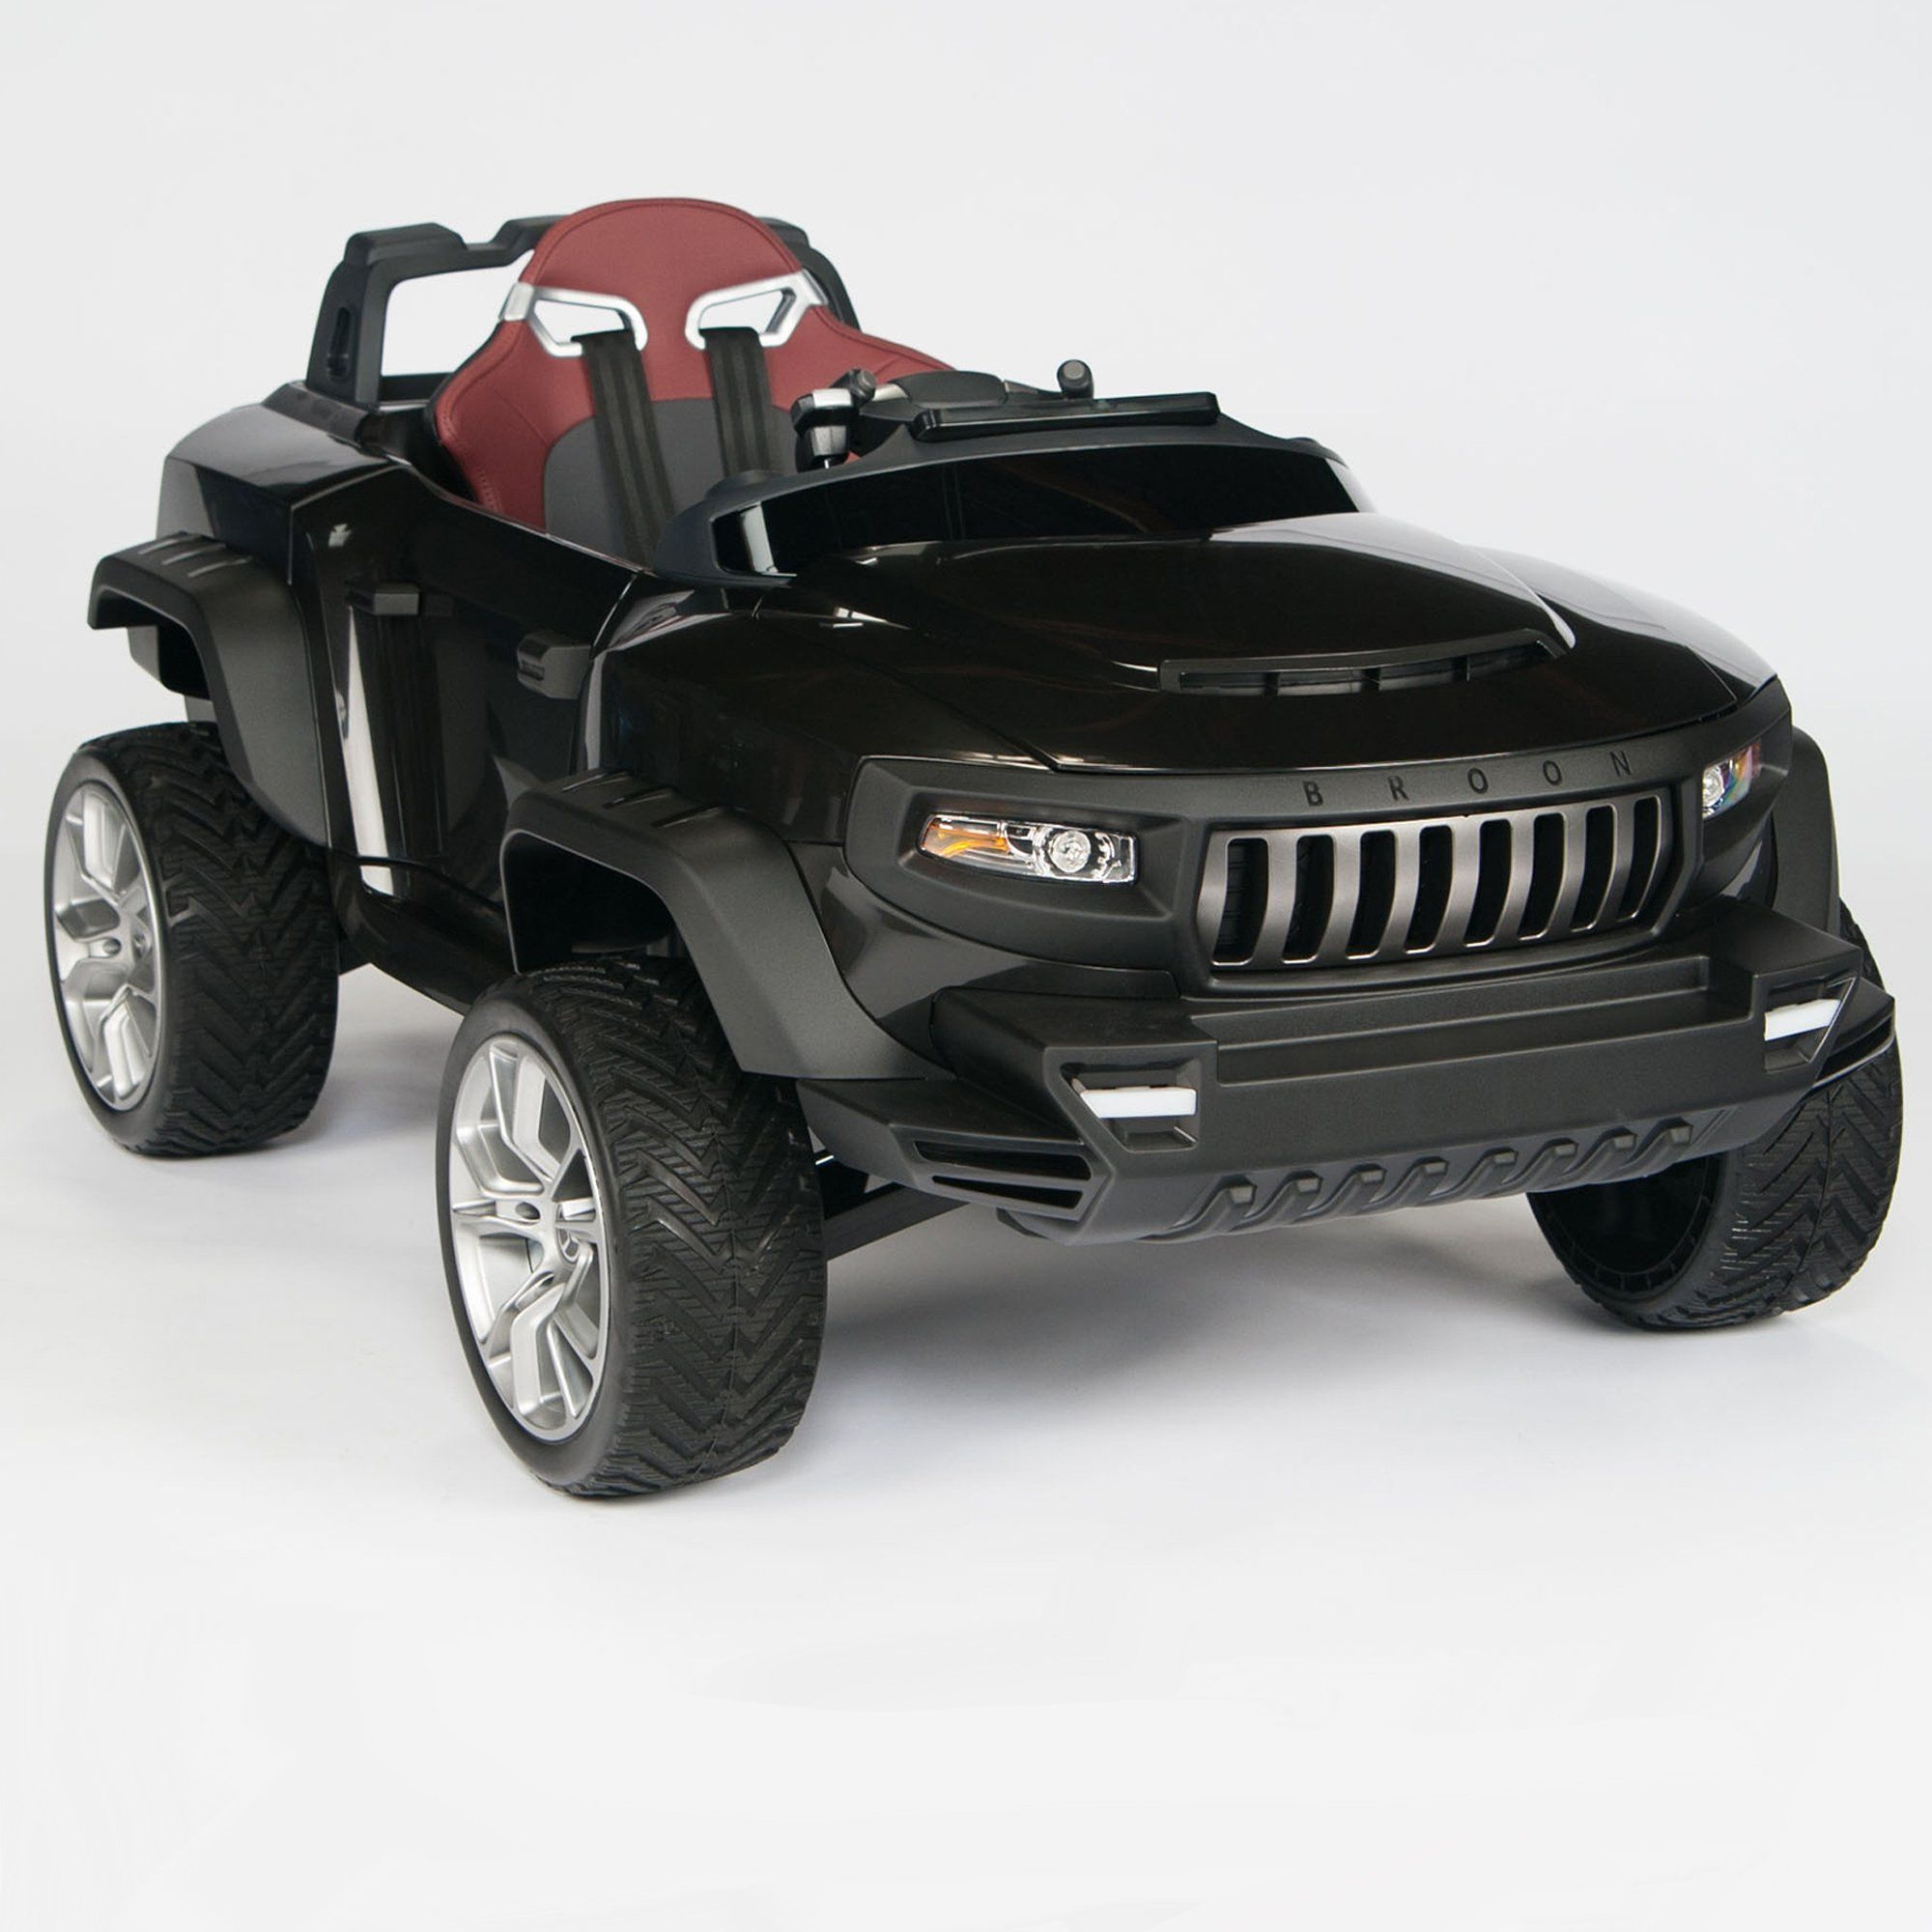 The Ultimate Remote Controlled RideOn Toy for Kids. Henes